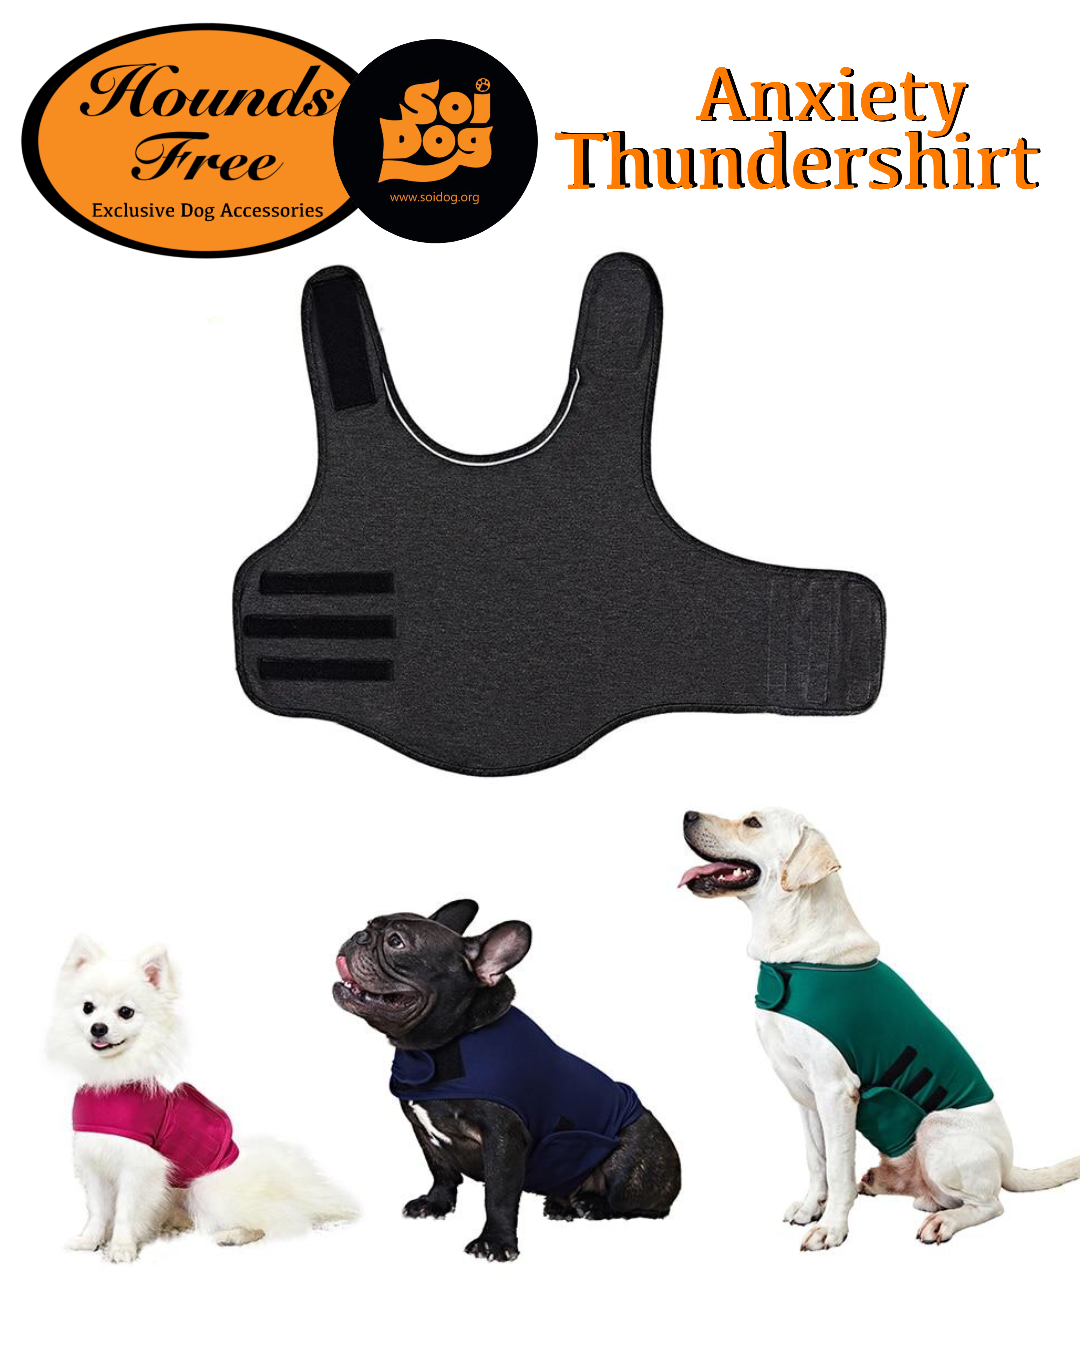 Hounds Free Thunder Shirt